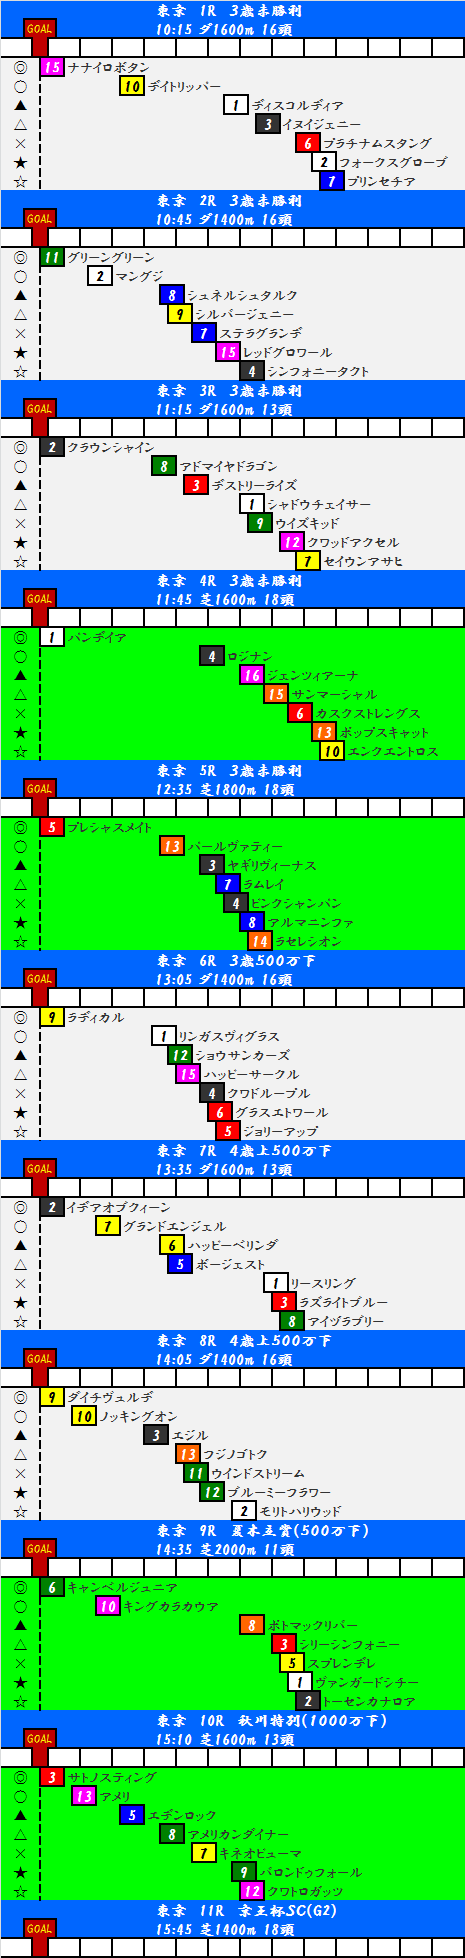 2015051601.png